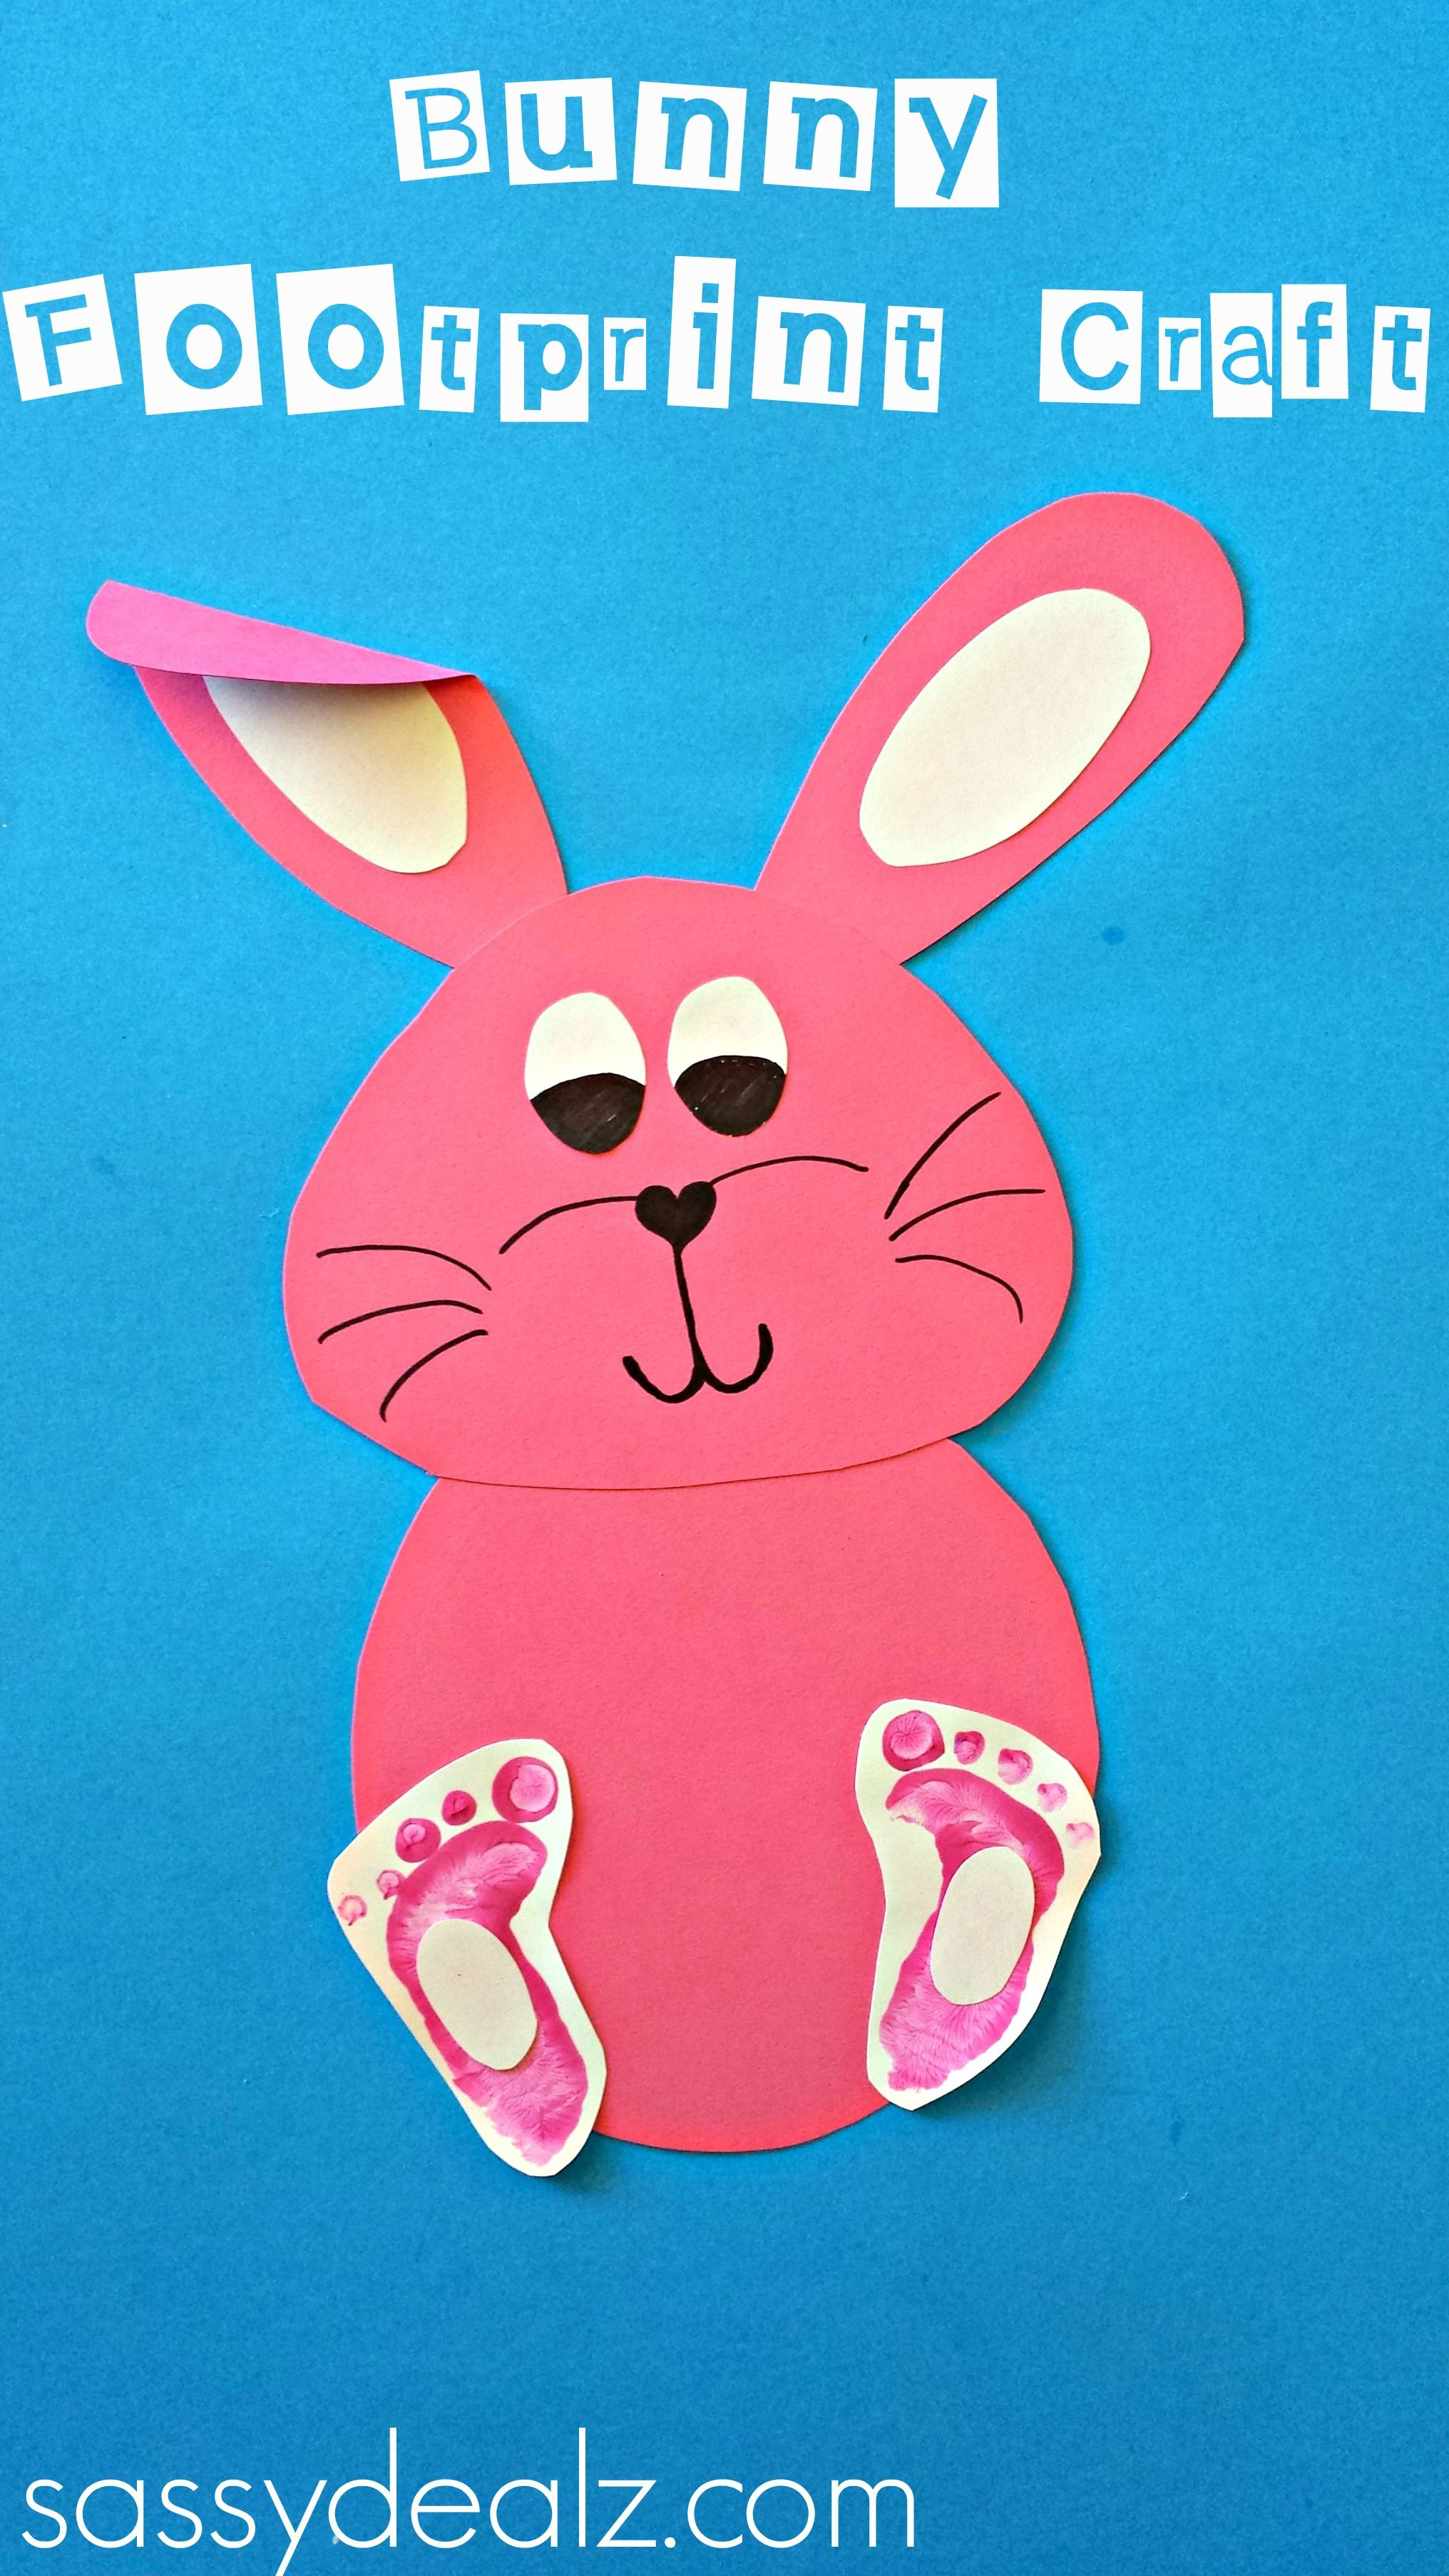 Easter arts and crafts ideas for children - Art Projects